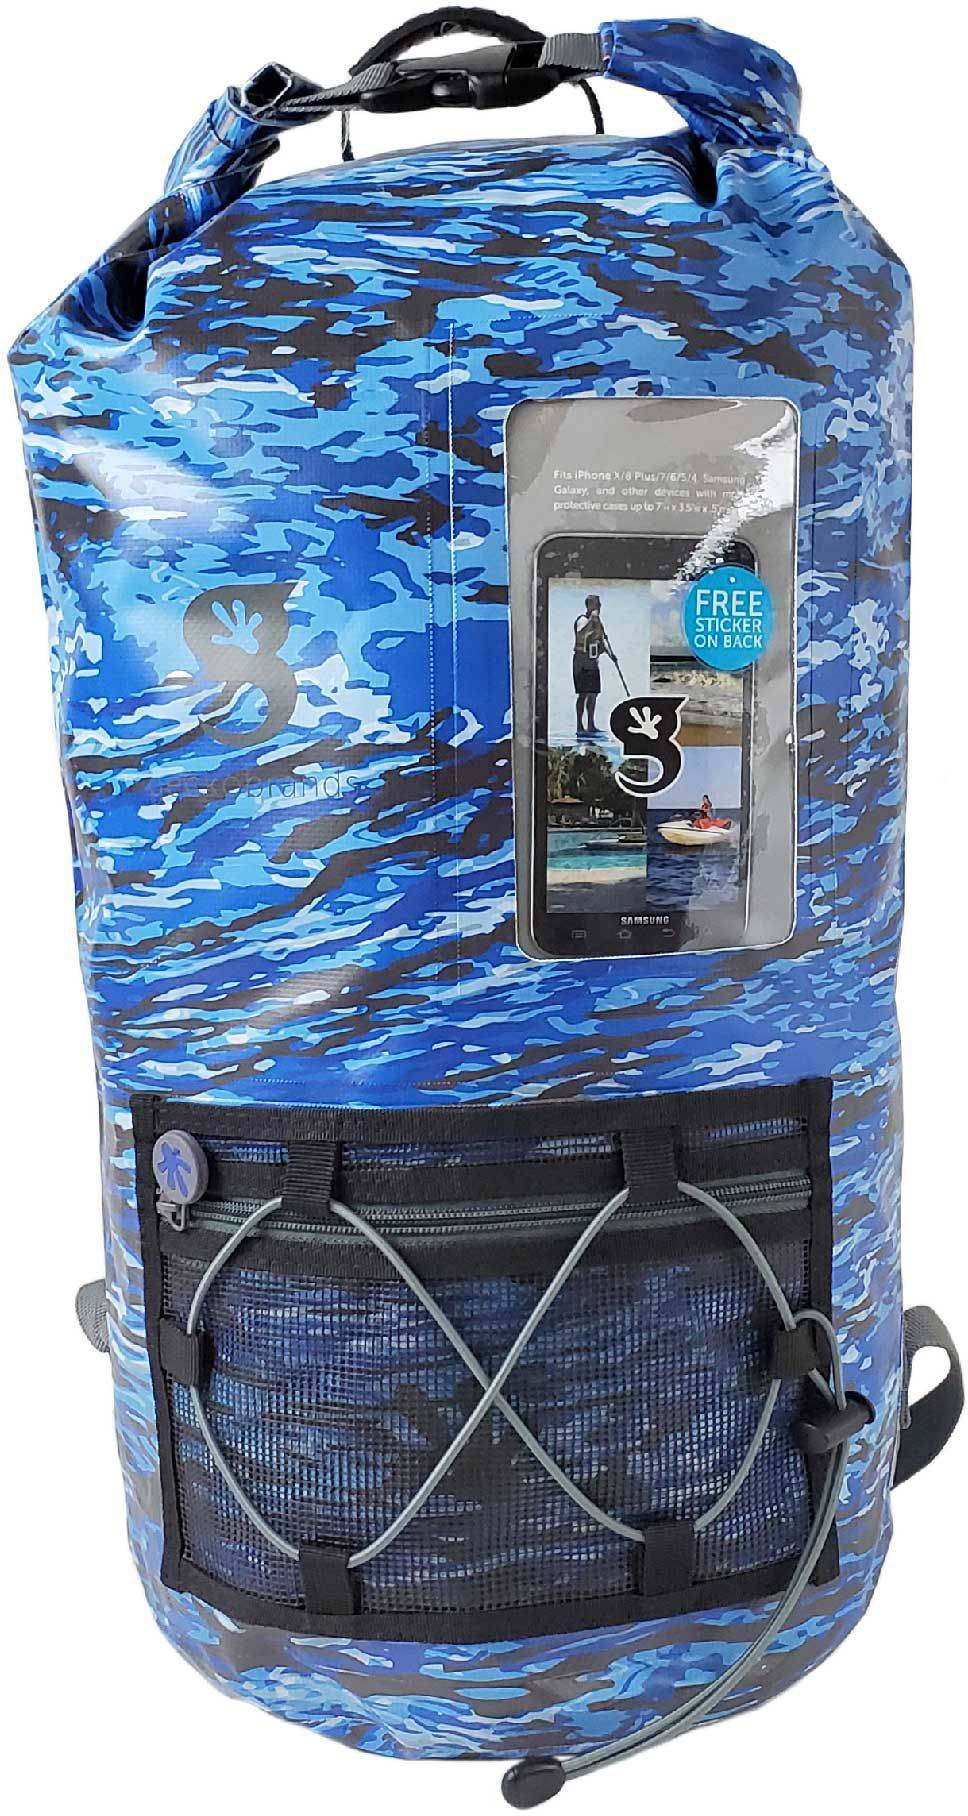 geckobrands Waterproof Hydroner Backpack with Clear Phone Compartment, Multi